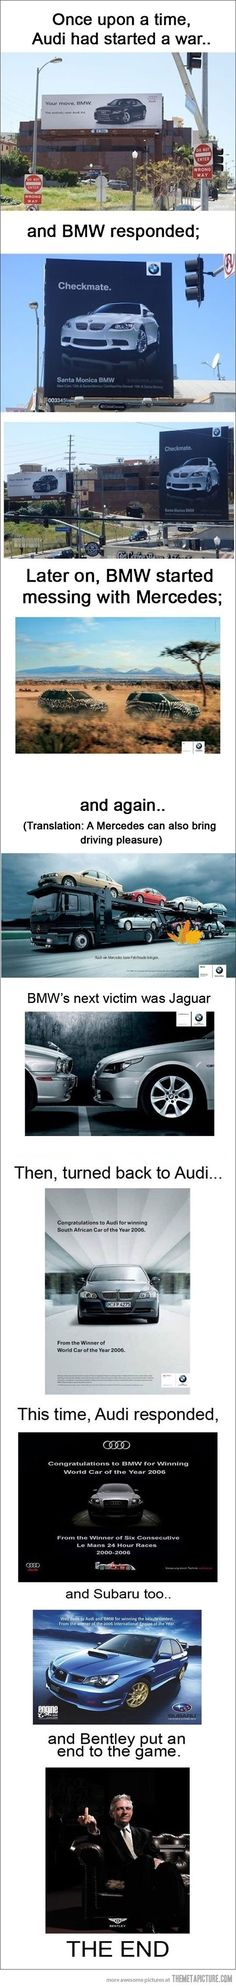 funny-car-ads-war